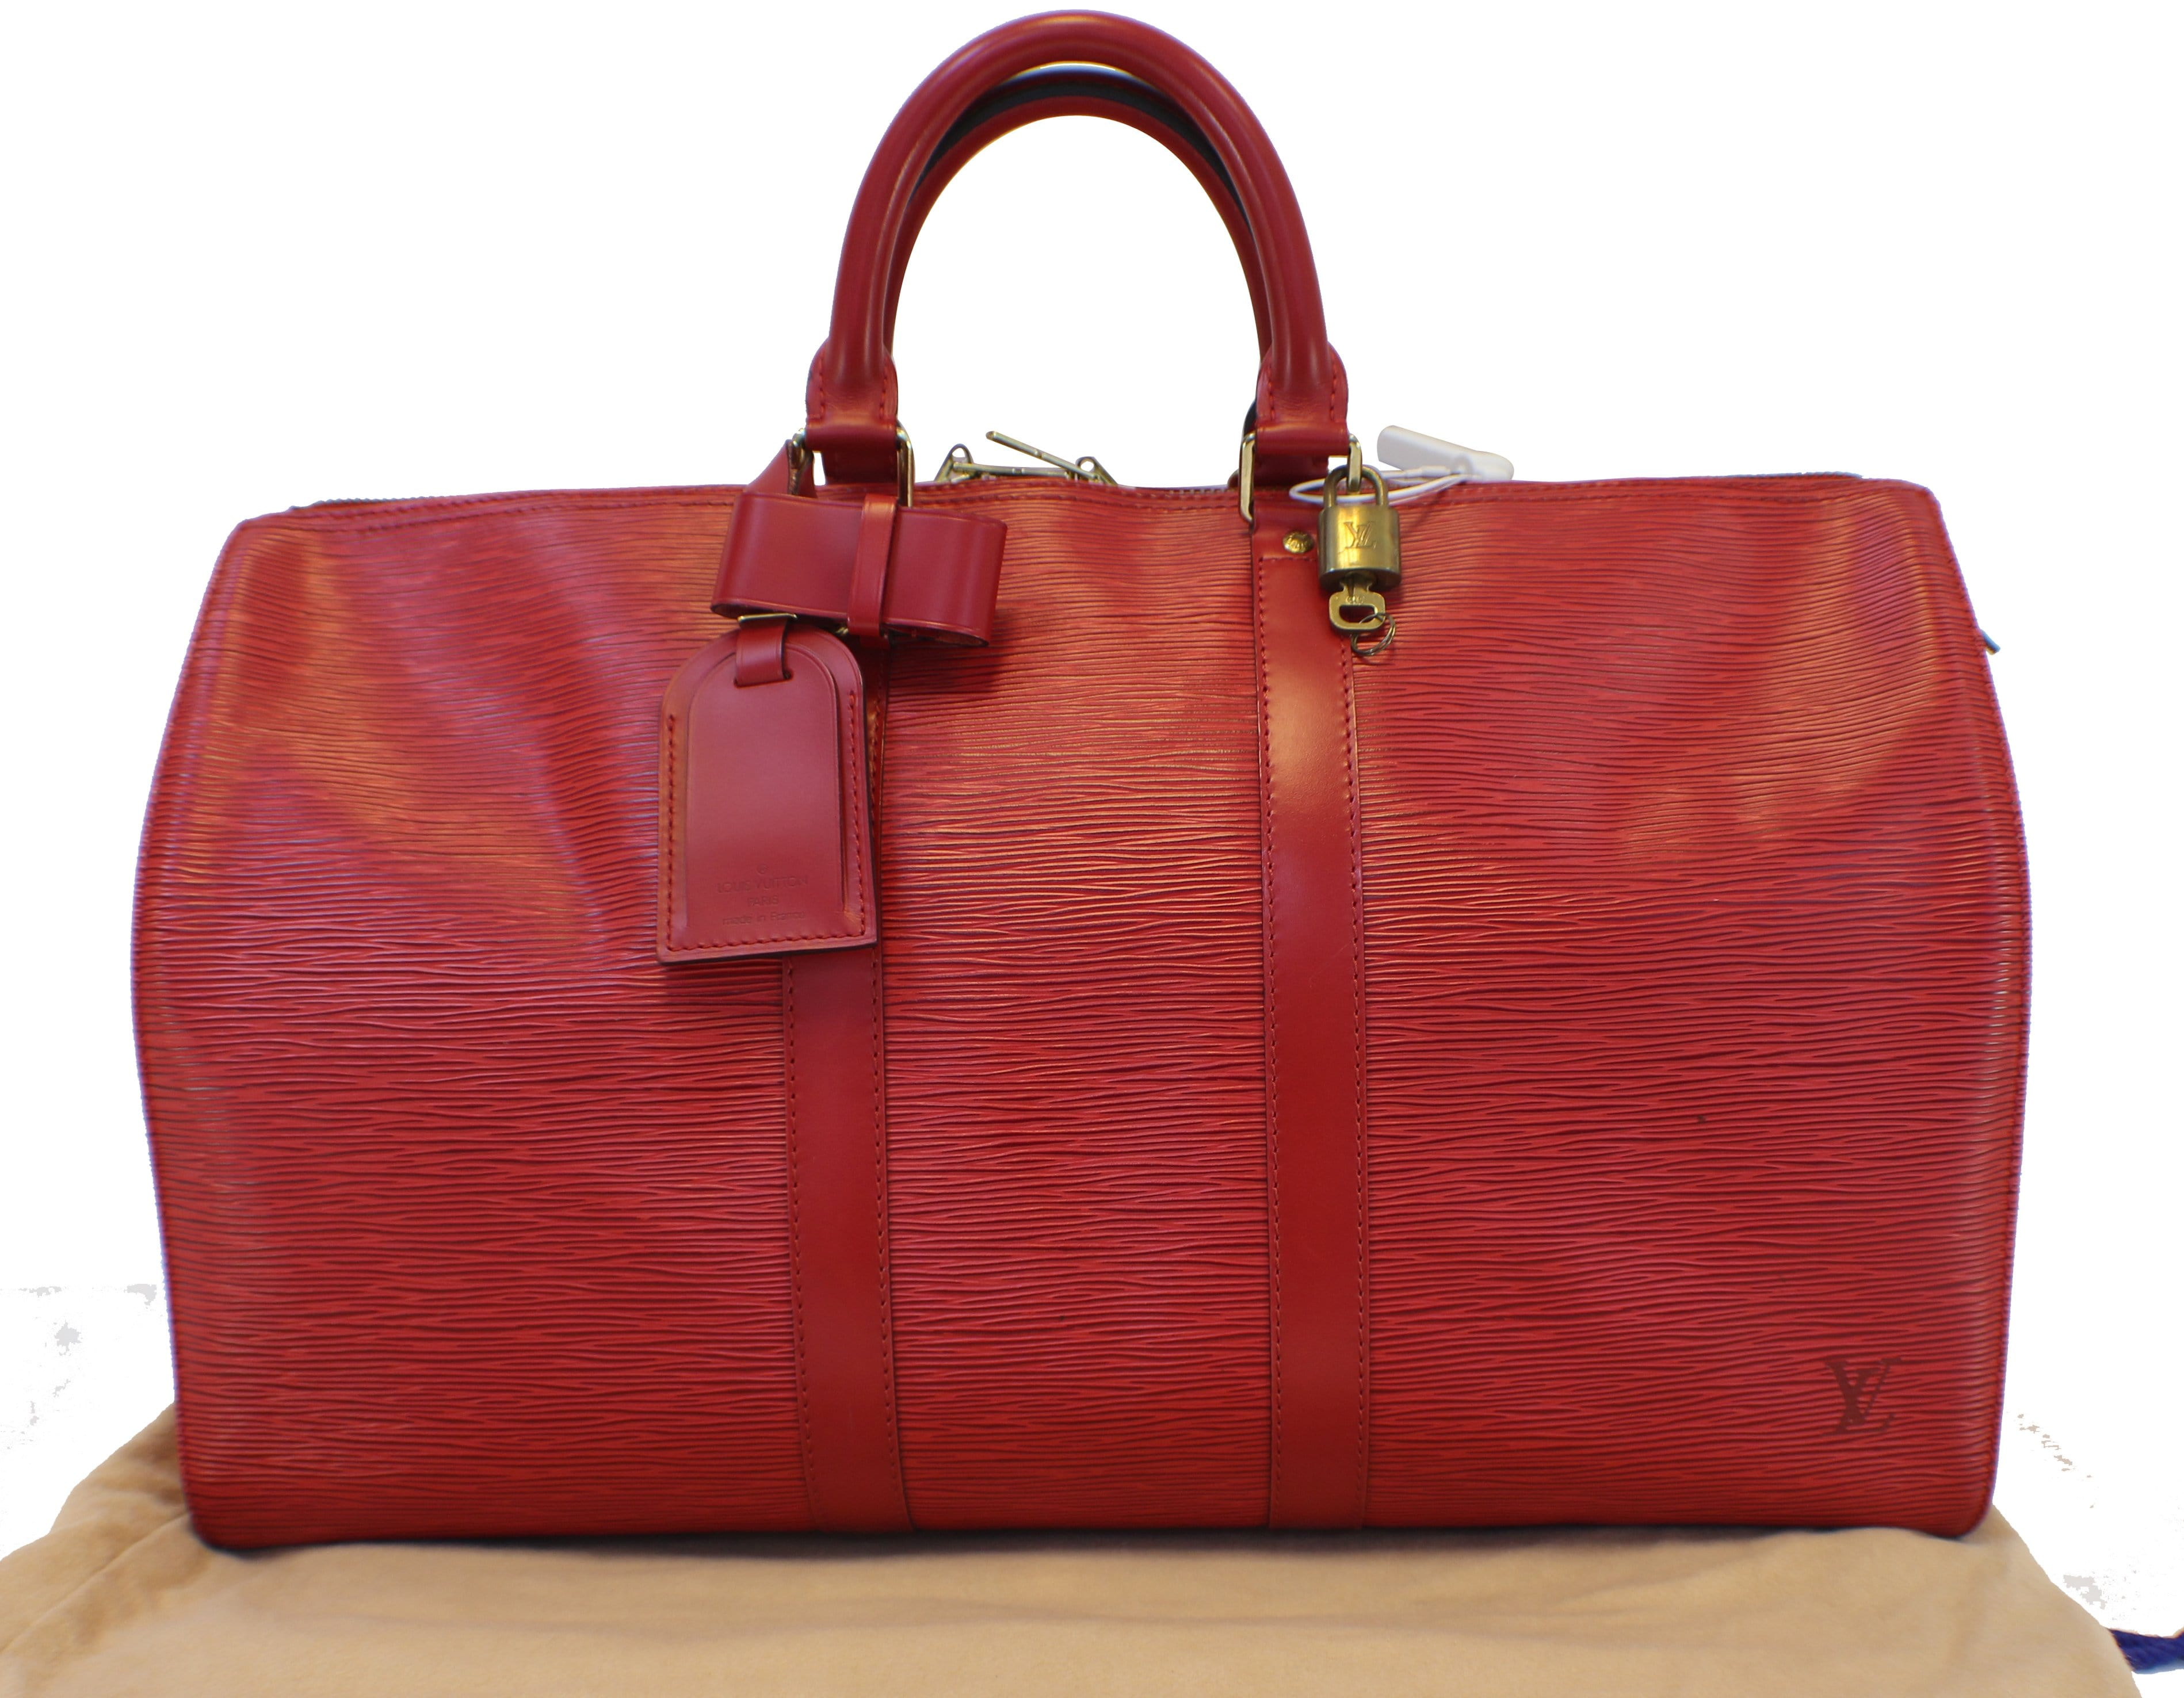 dc0a6fc0d606 Authentic LOUIS VUITTON Epi Leather Red Keepall 45 Boston Bag ...